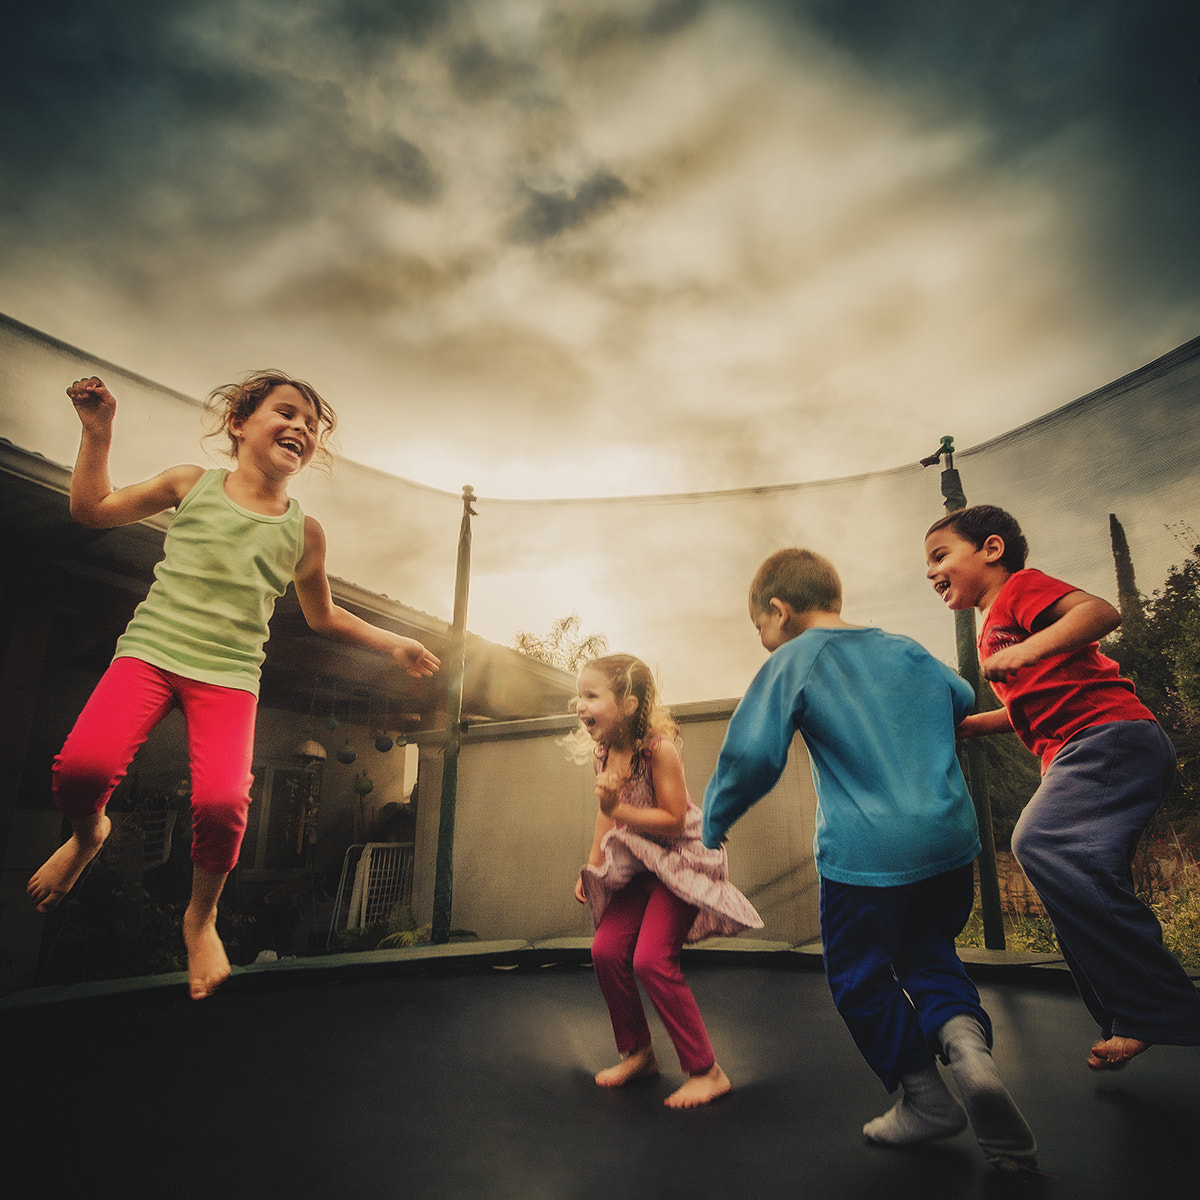 Photograph Trampoline by Adam Shul on 500px